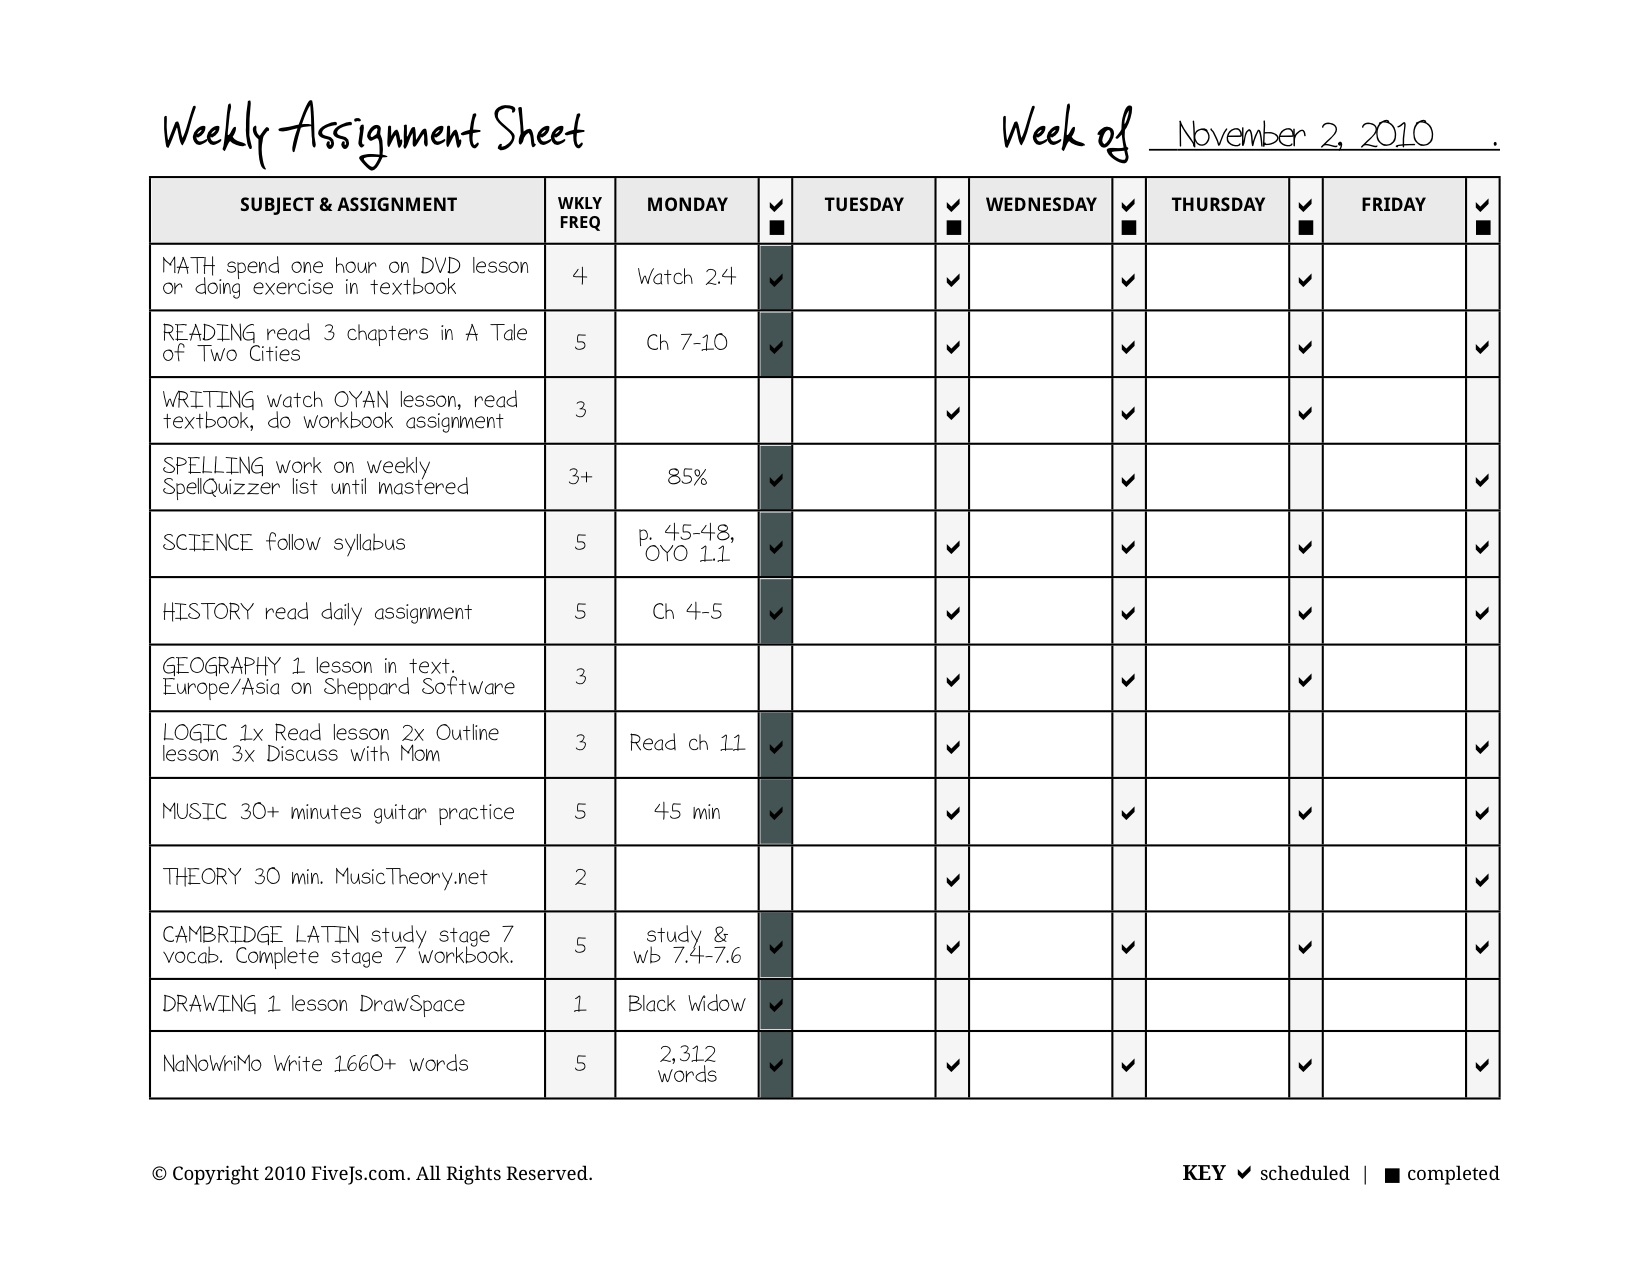 homeschool weekly assignment planner as